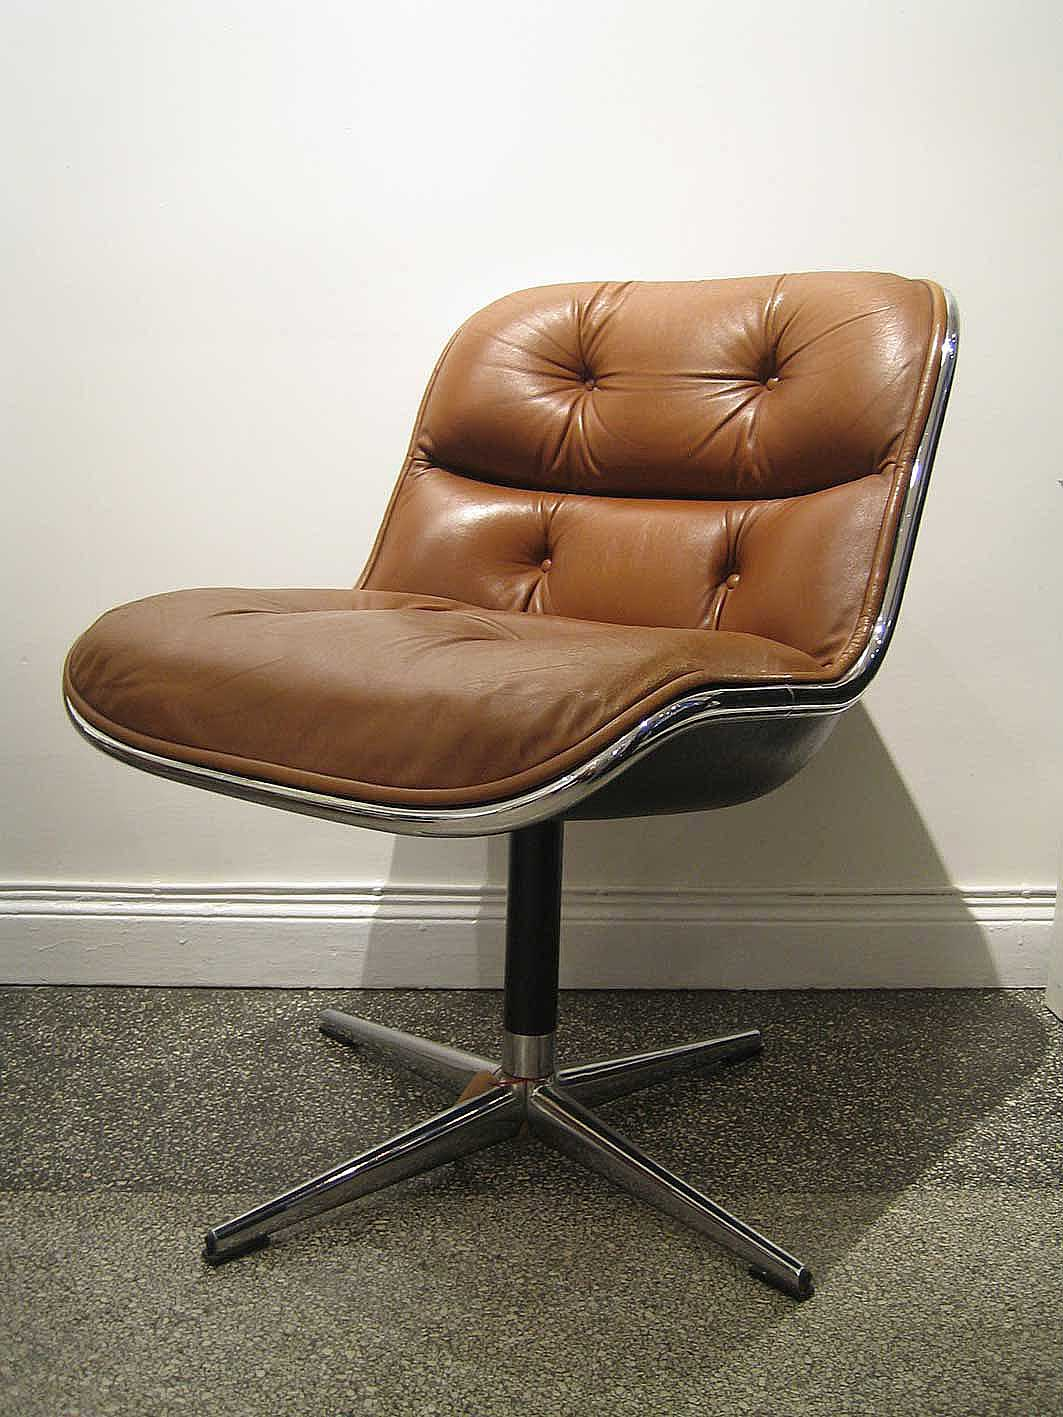 Charles Pollock Chair Leicester Bangs Charles Pollock Best Selling Chair